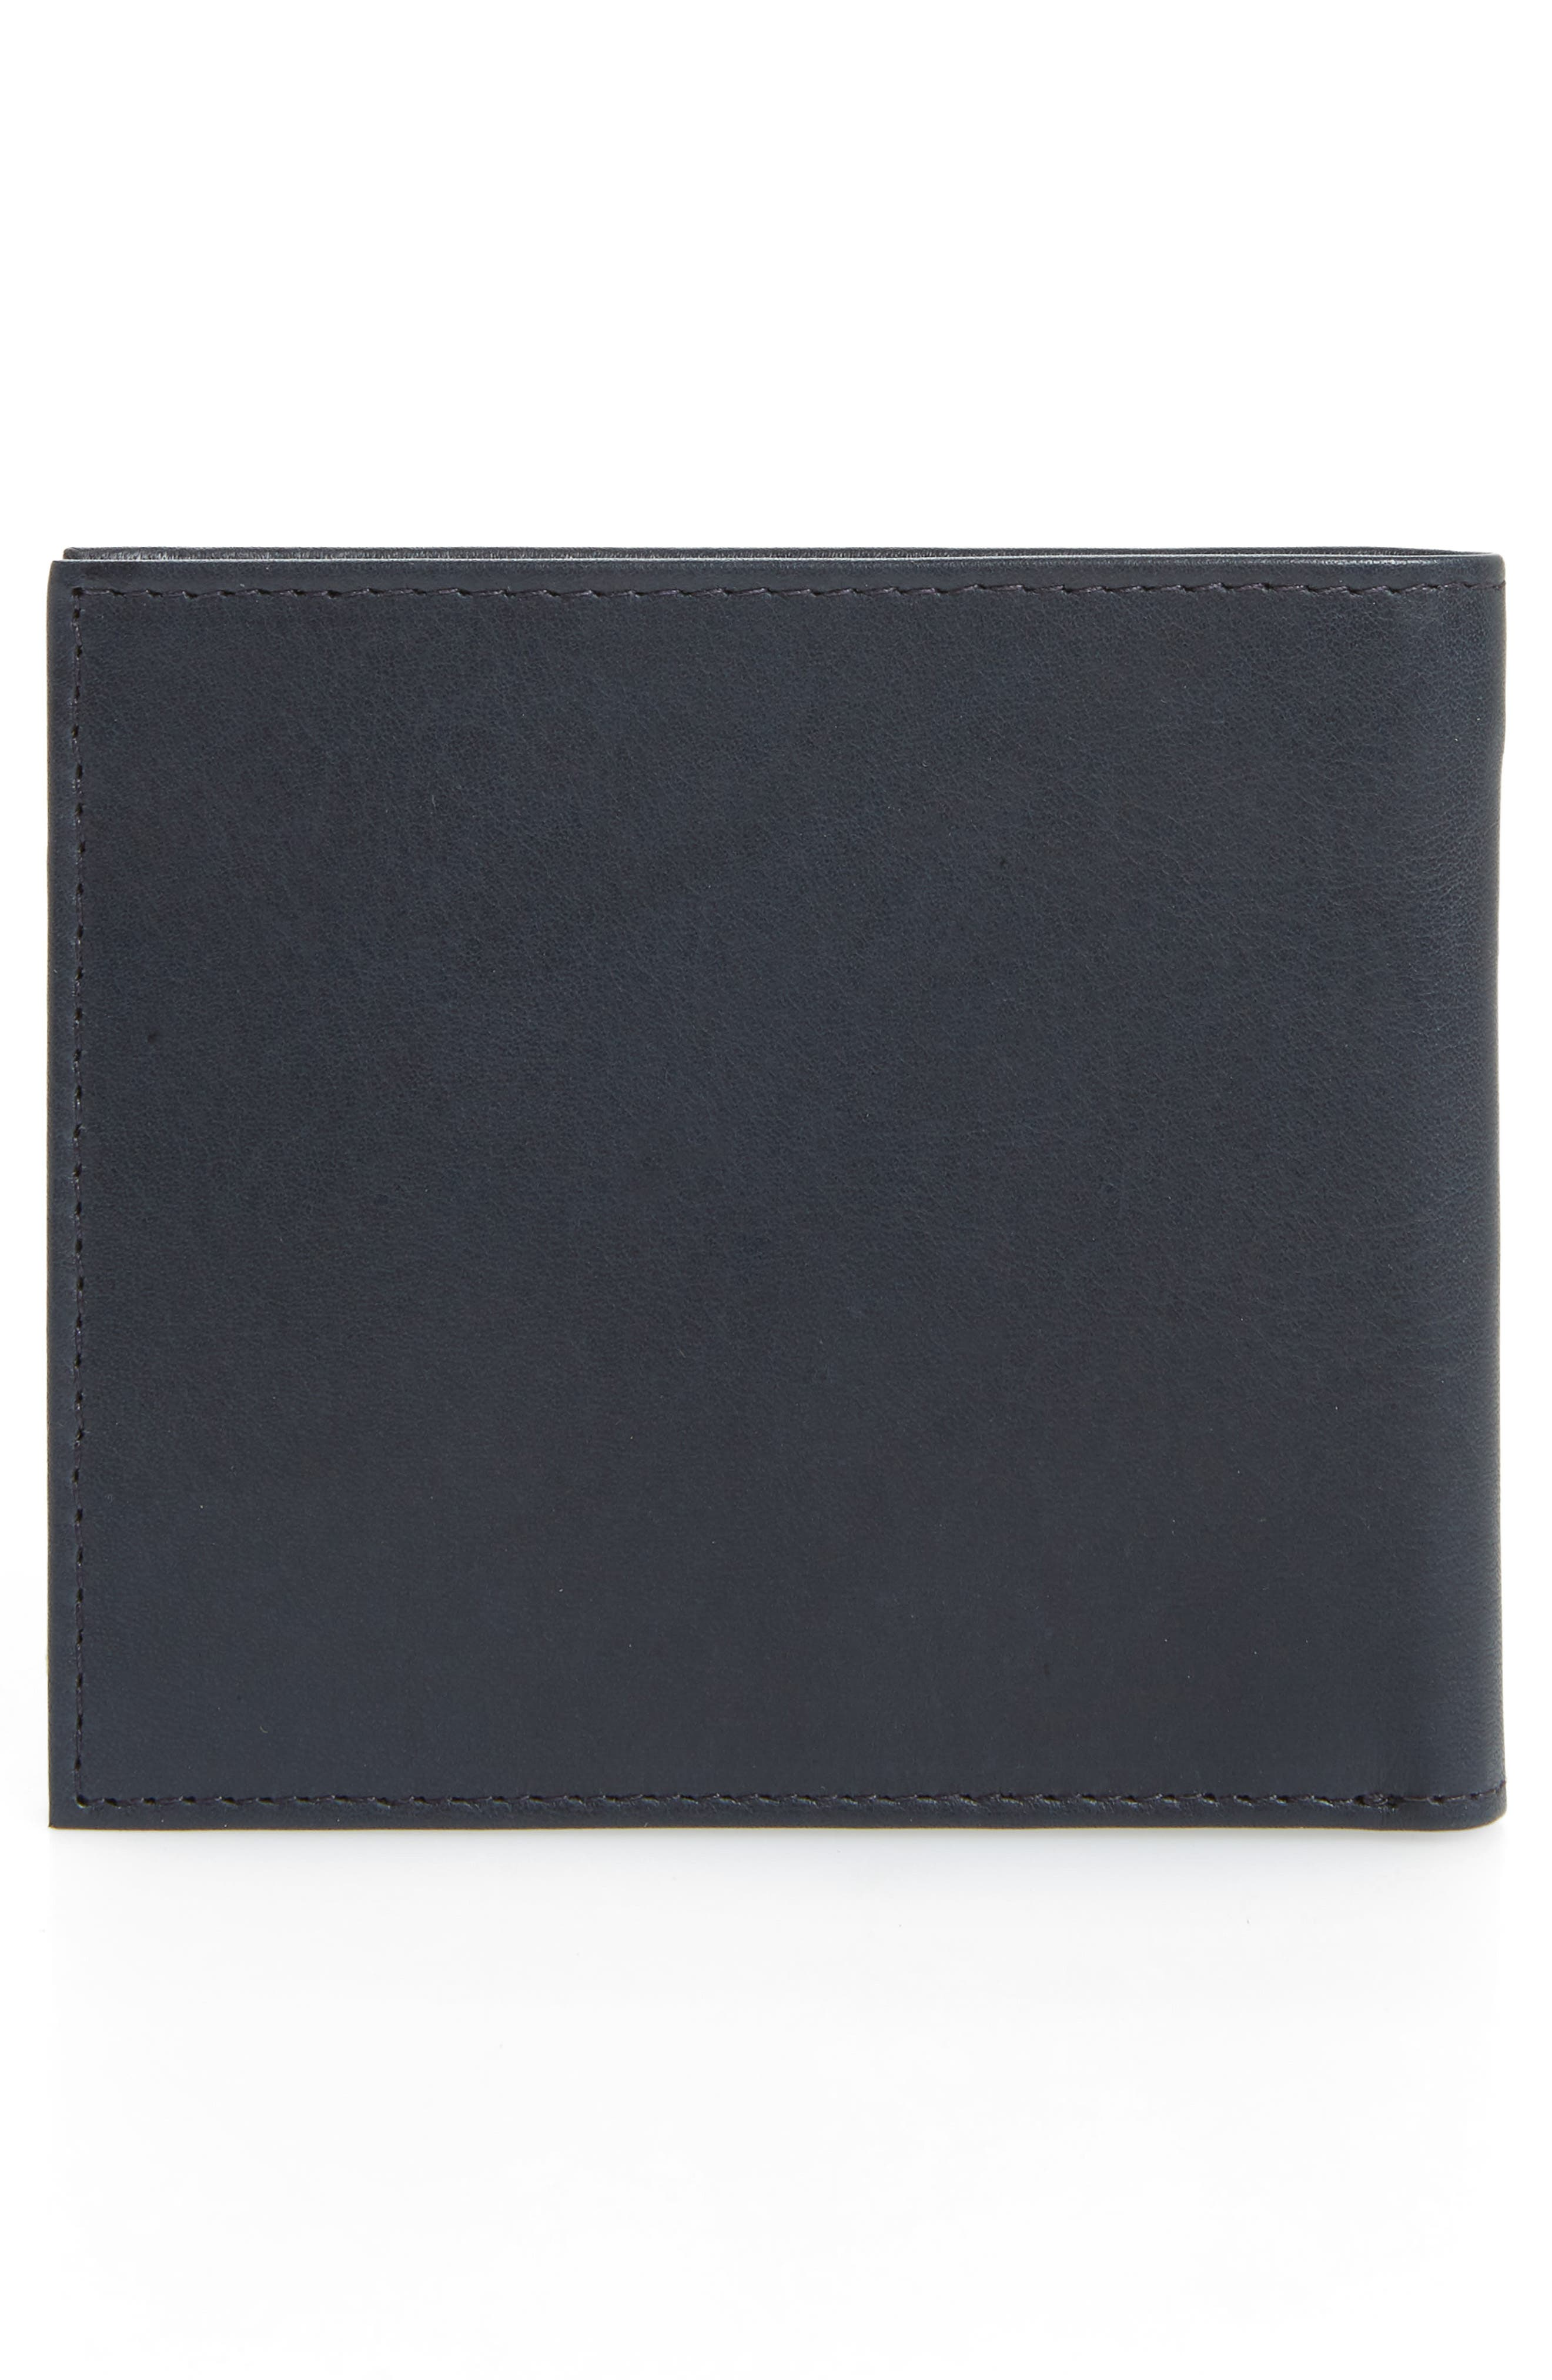 Rester Leather Bifold Wallet,                             Alternate thumbnail 3, color,                             Navy